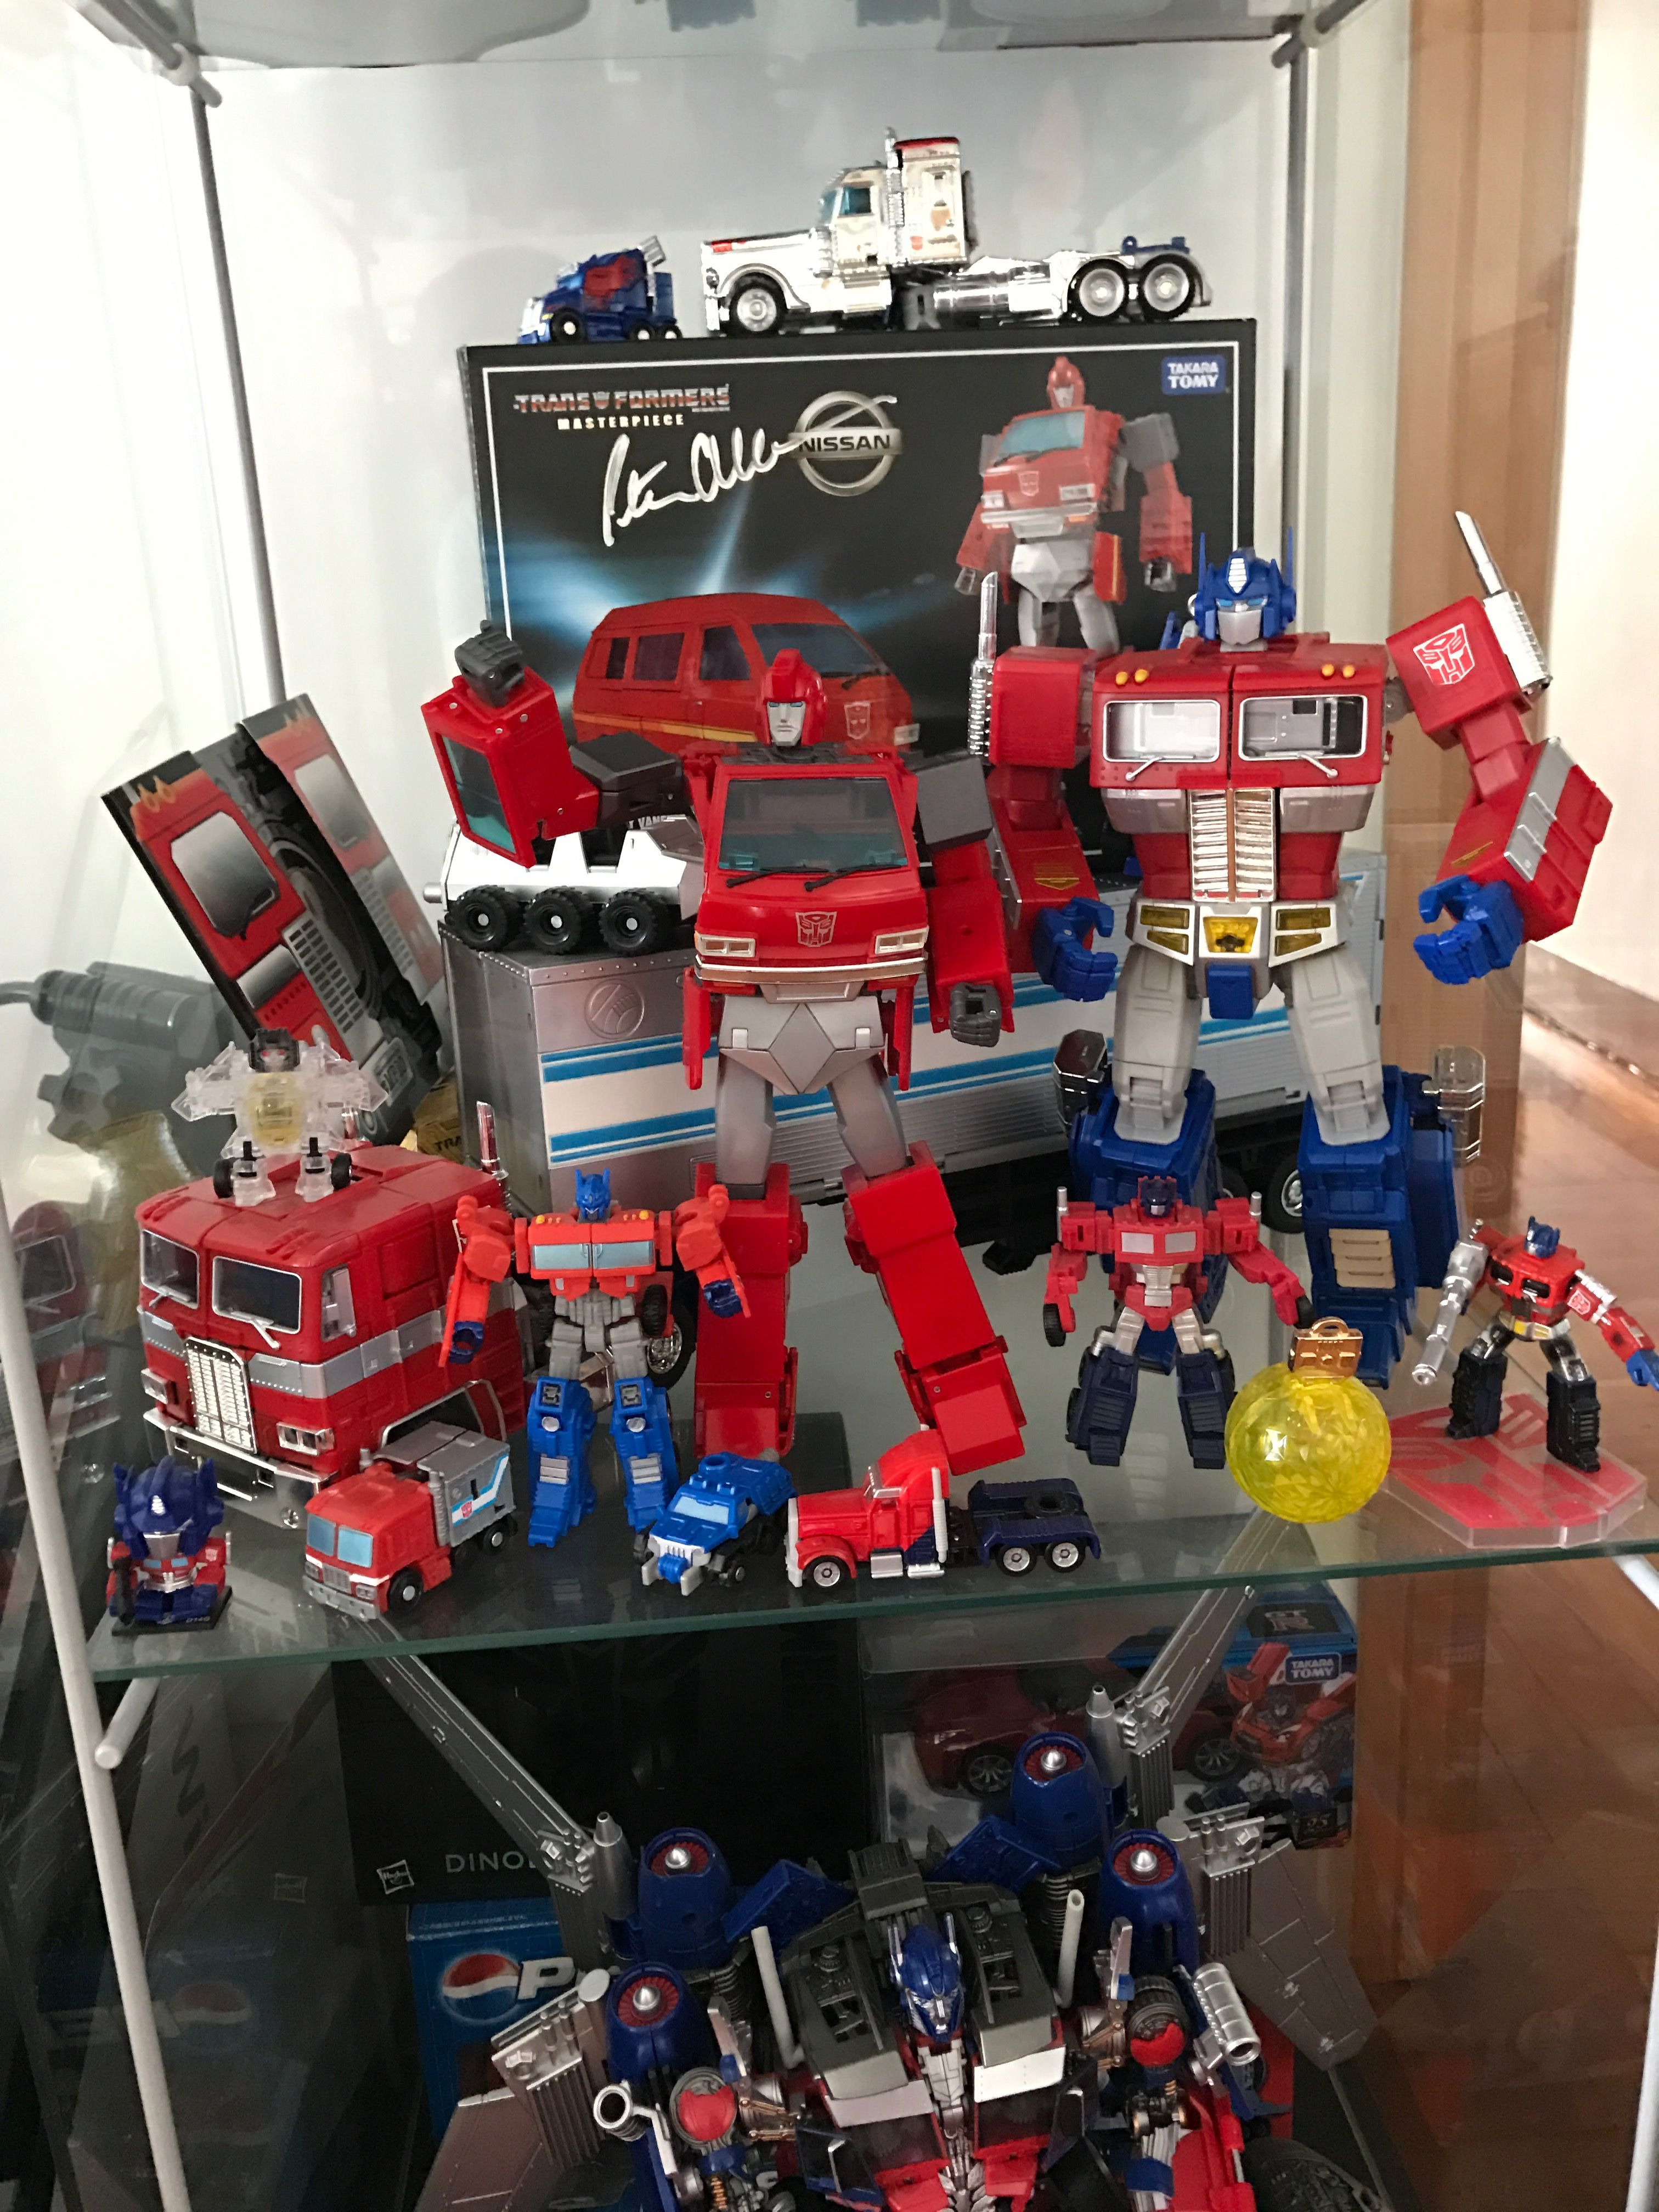 One of the most cherished pieces in my collection - Ironhide autographed by Peter Cullen surrounded by more of my Primes - October 2016